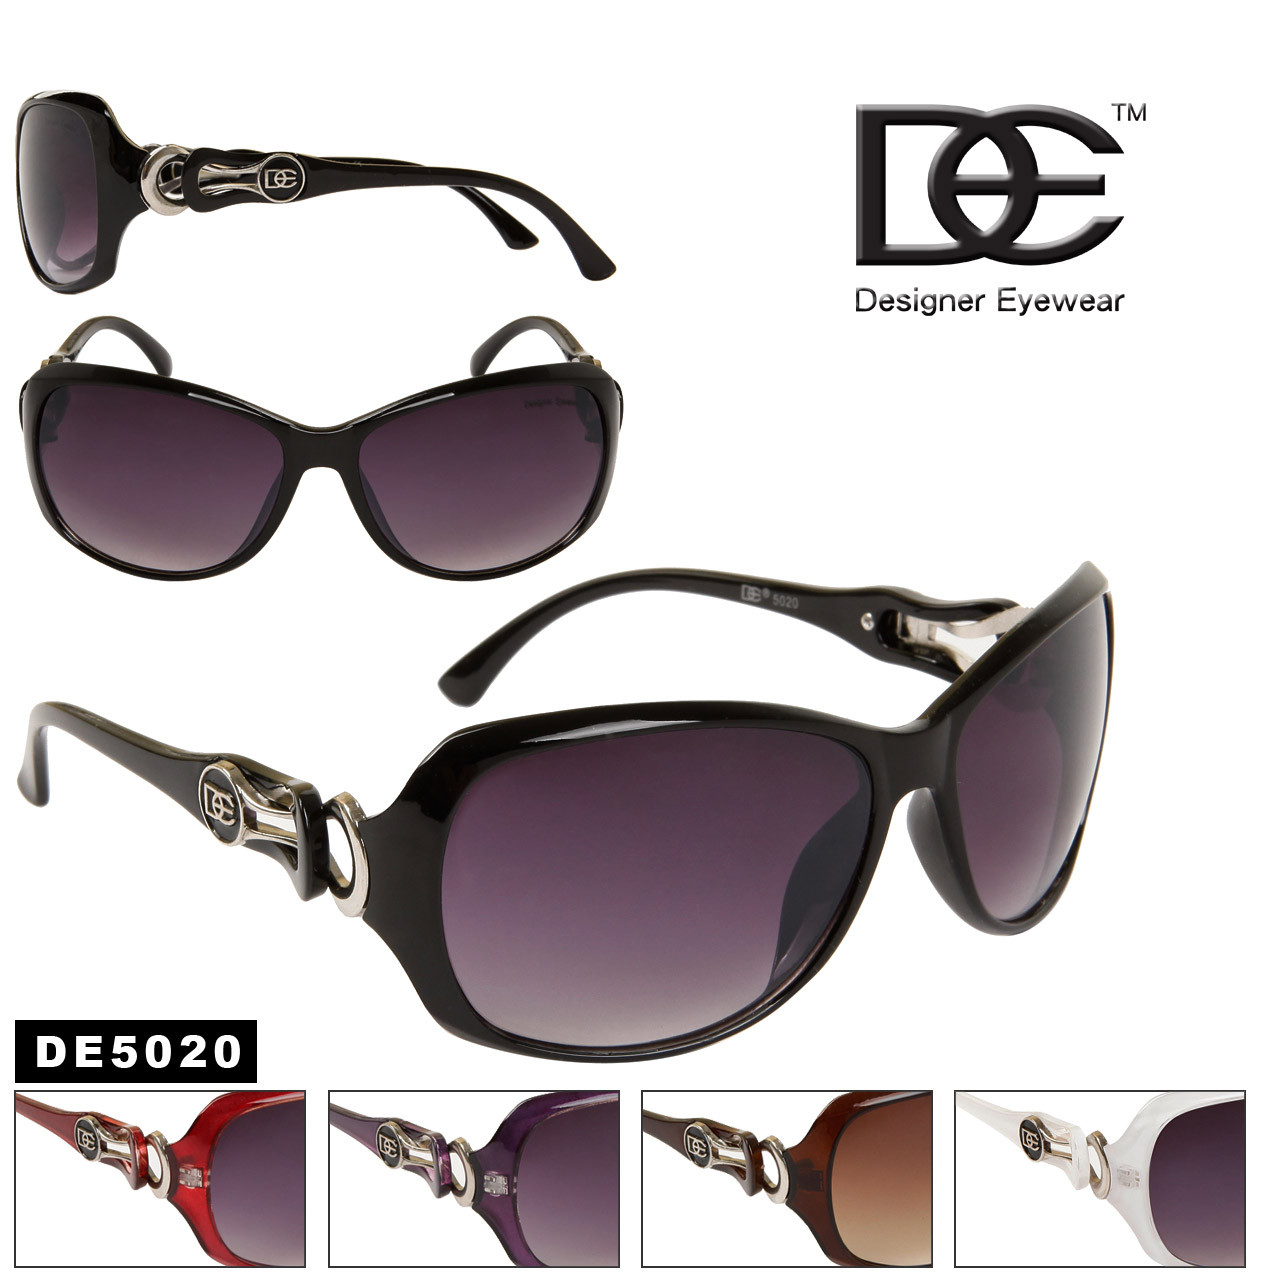 DE5020 Fashion Sunglasses